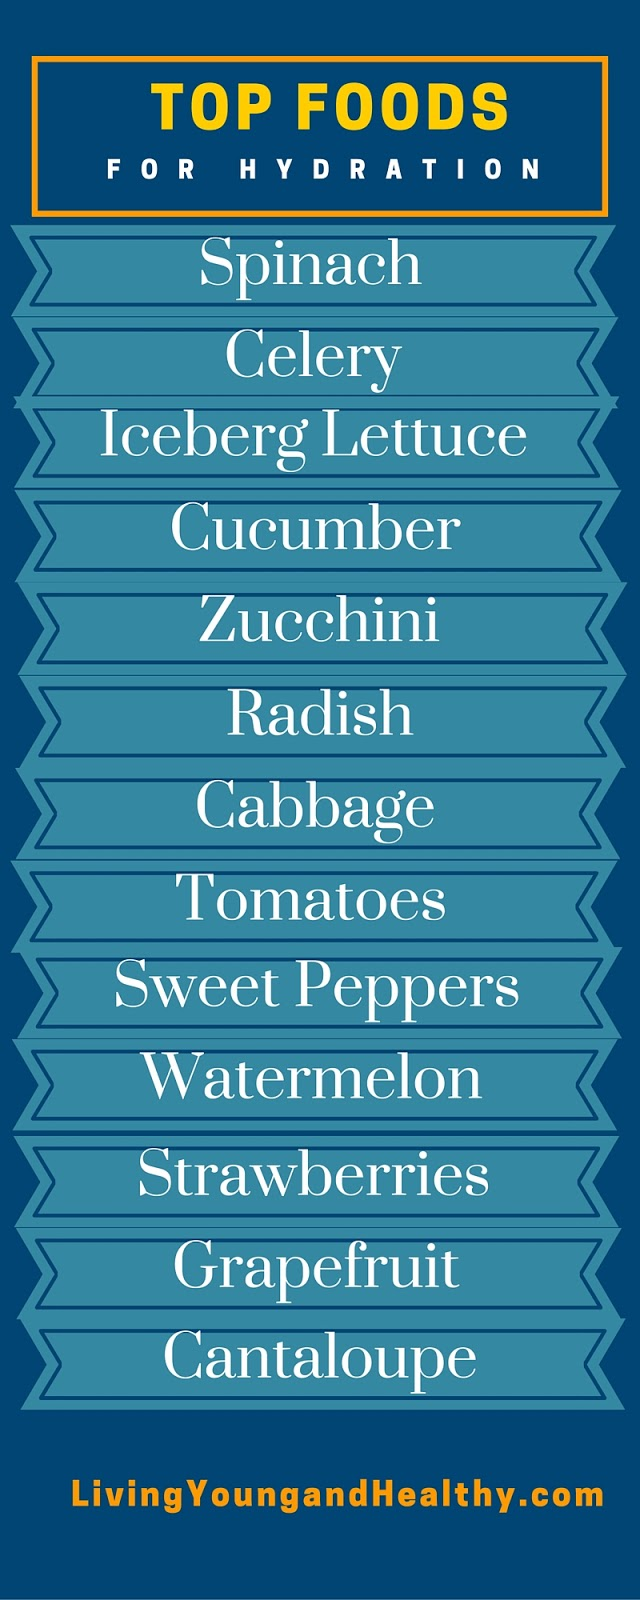 Top Foods that Help You Get your Daily Ounces of  Fluids